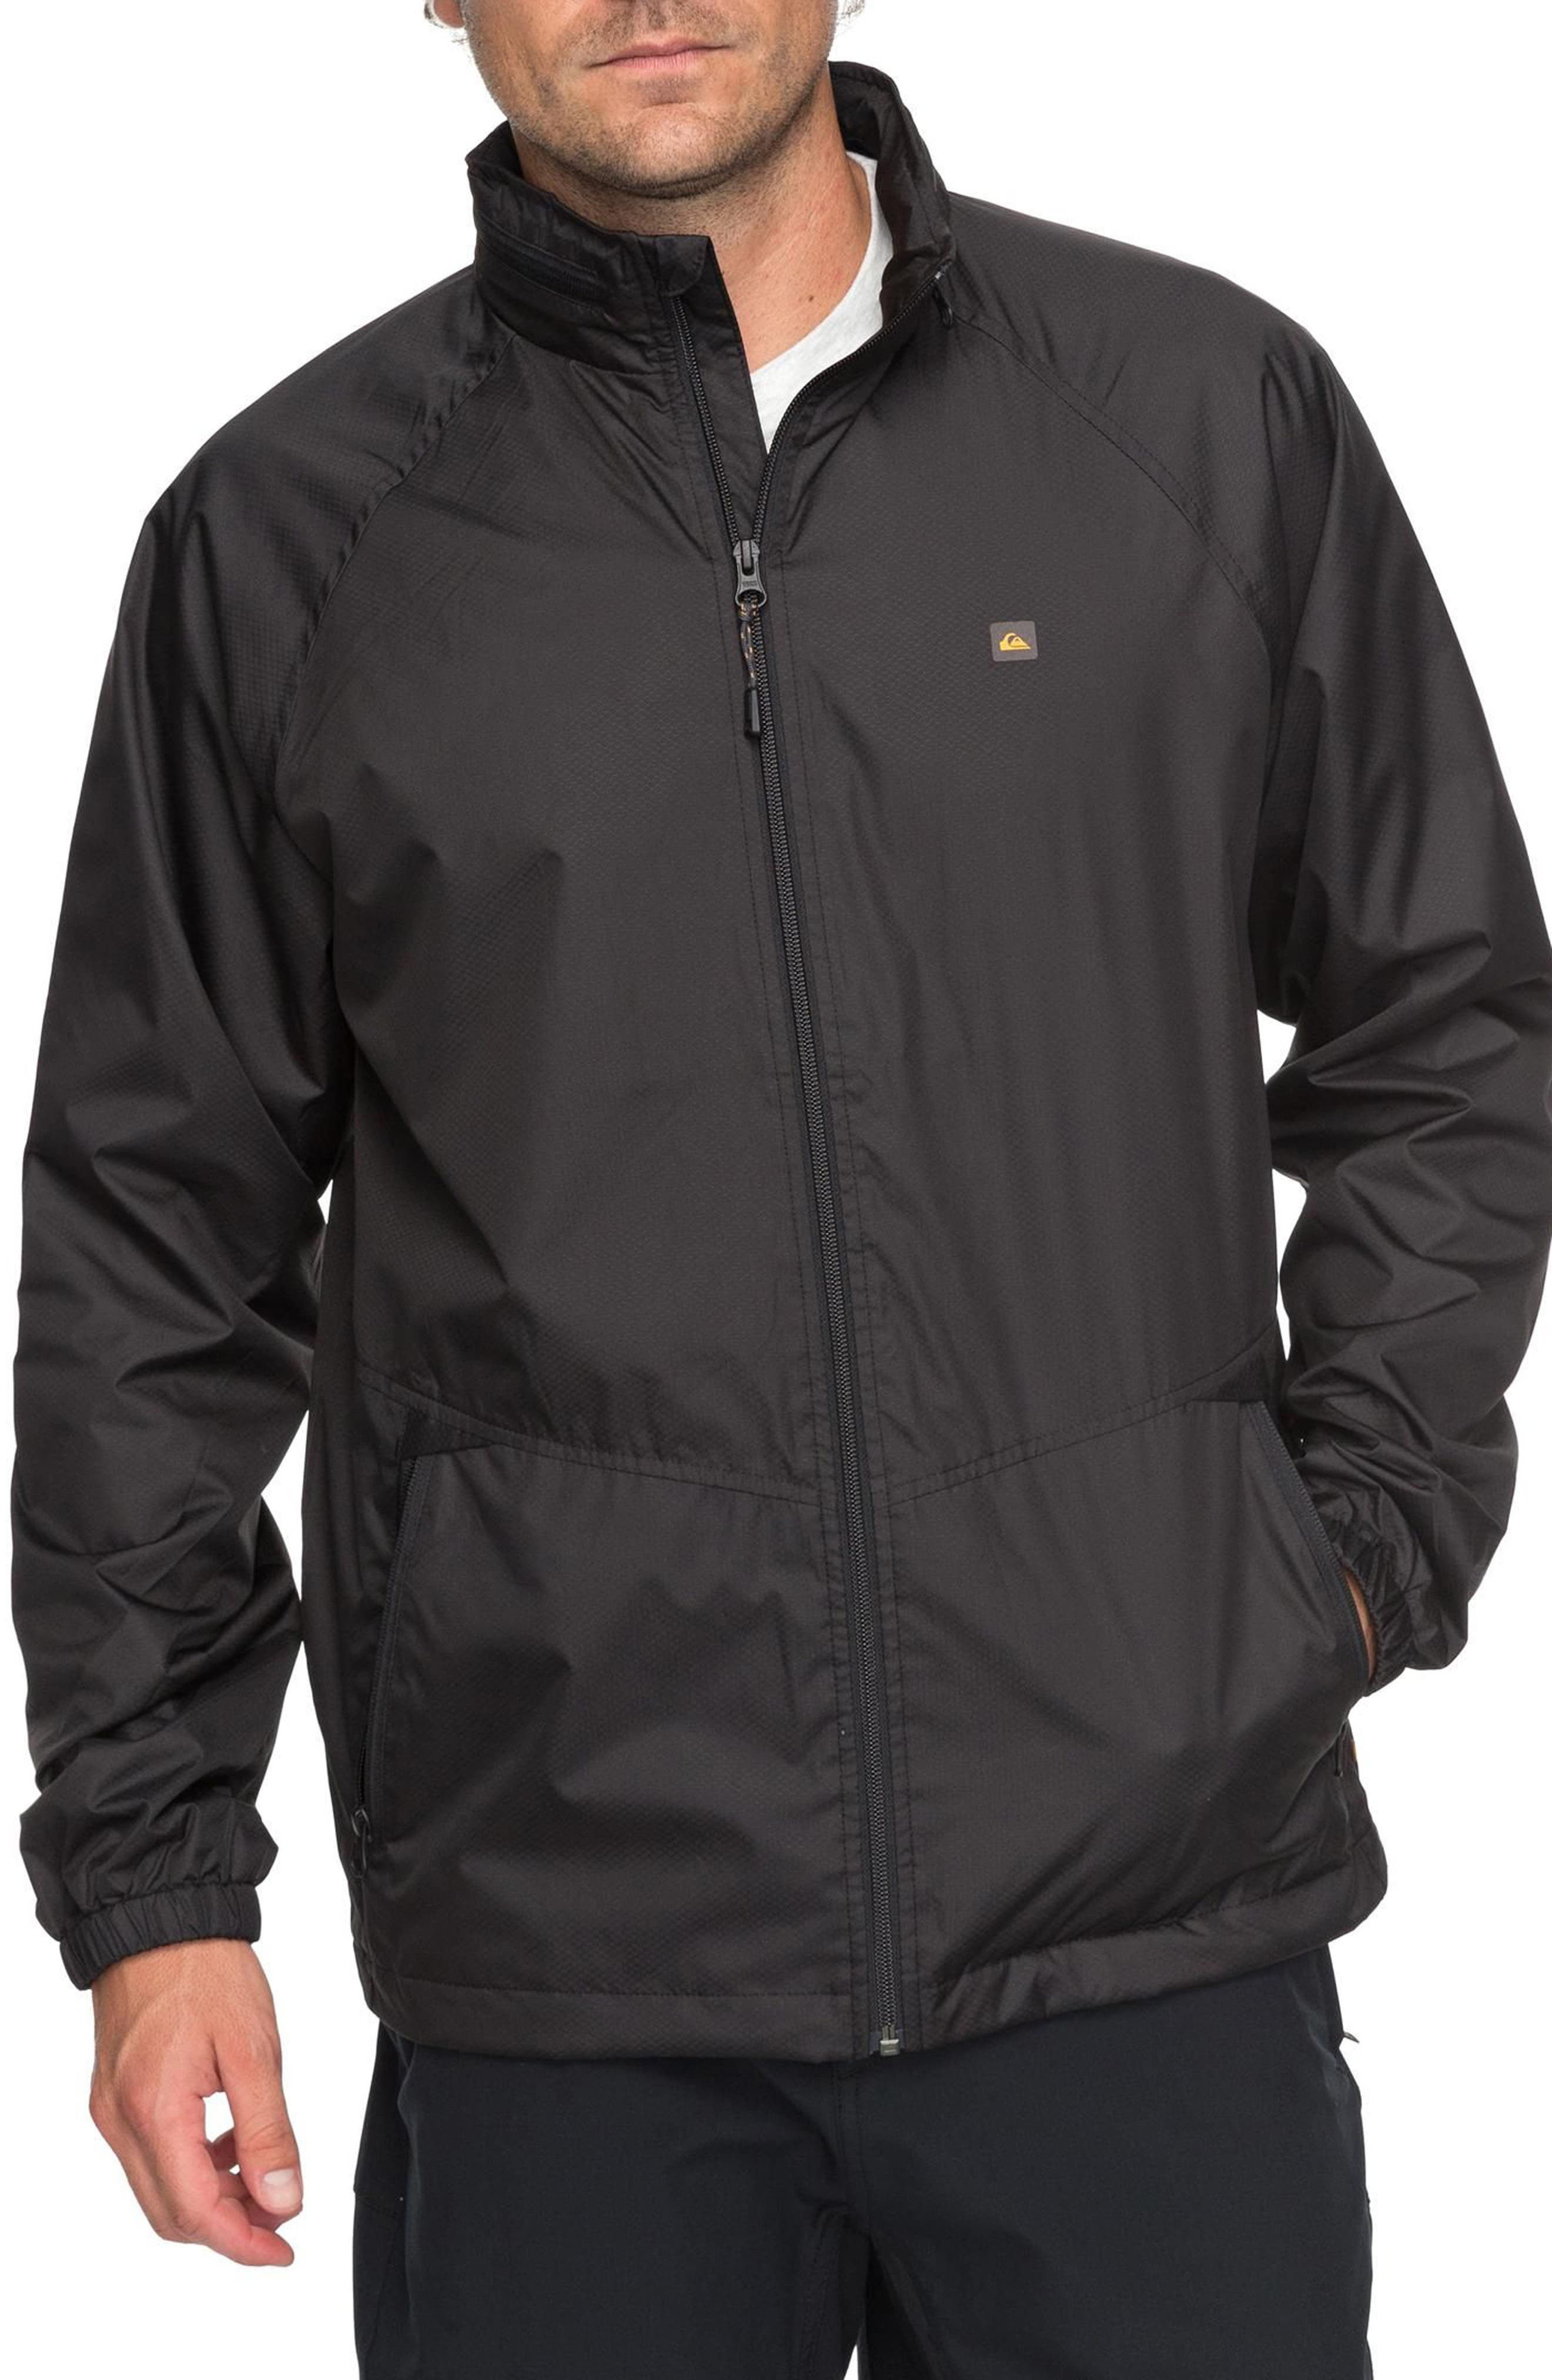 Shell Shock Water Repellent Windbreaker,                             Main thumbnail 1, color,                             Black